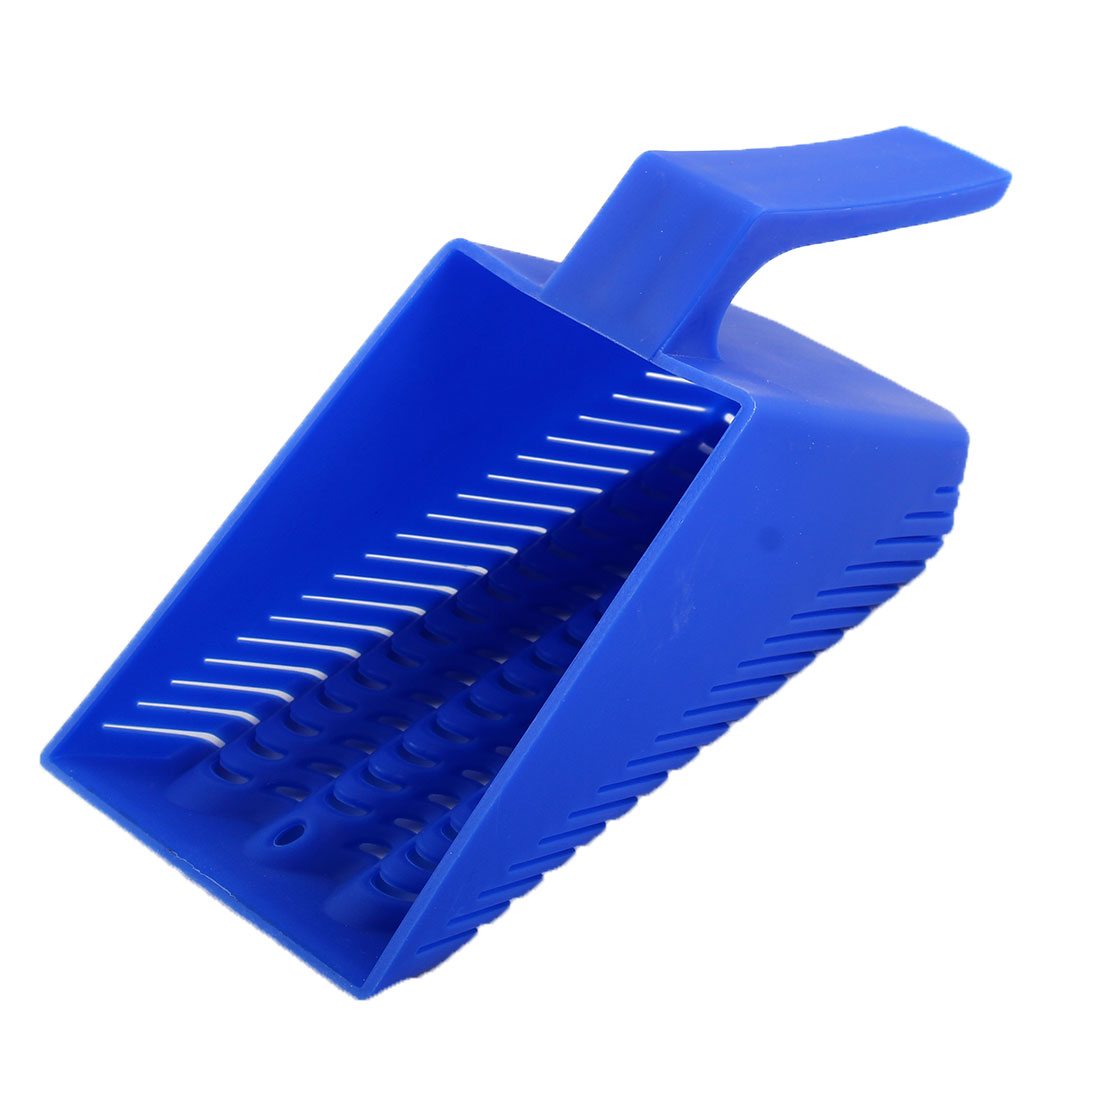 Aquarium Plastic Sand Scoop Scraper Gravel Cleaning Tool Grit Shovel Blue